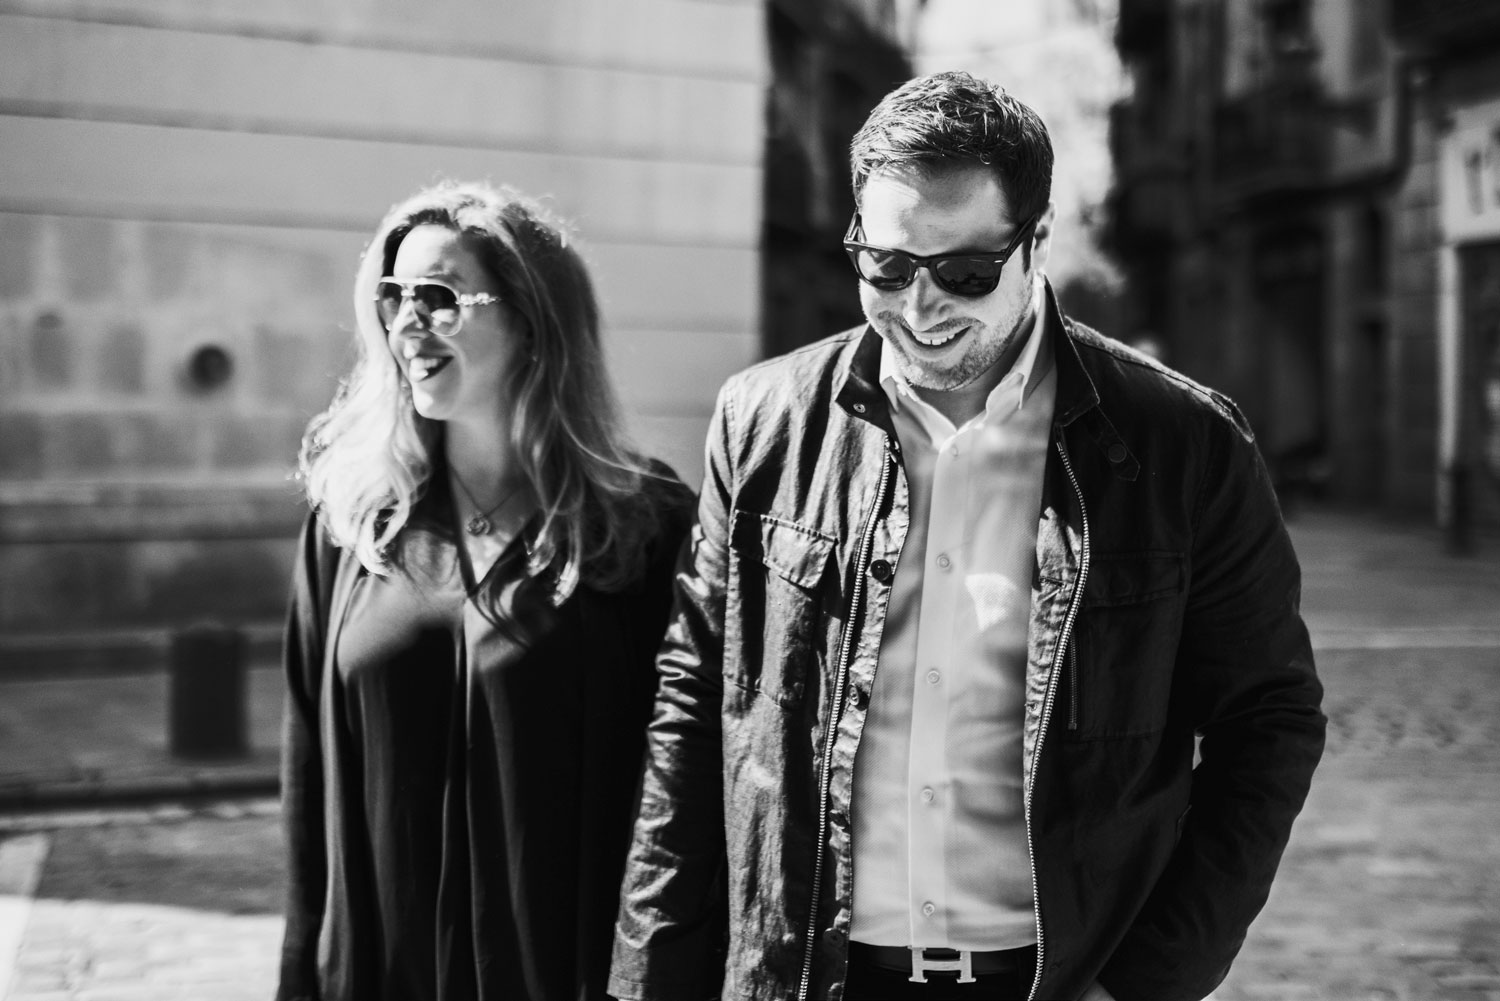 Michelle Durpetti and Collin Pierson engagement photos in Barcelona, Spain black and white photo